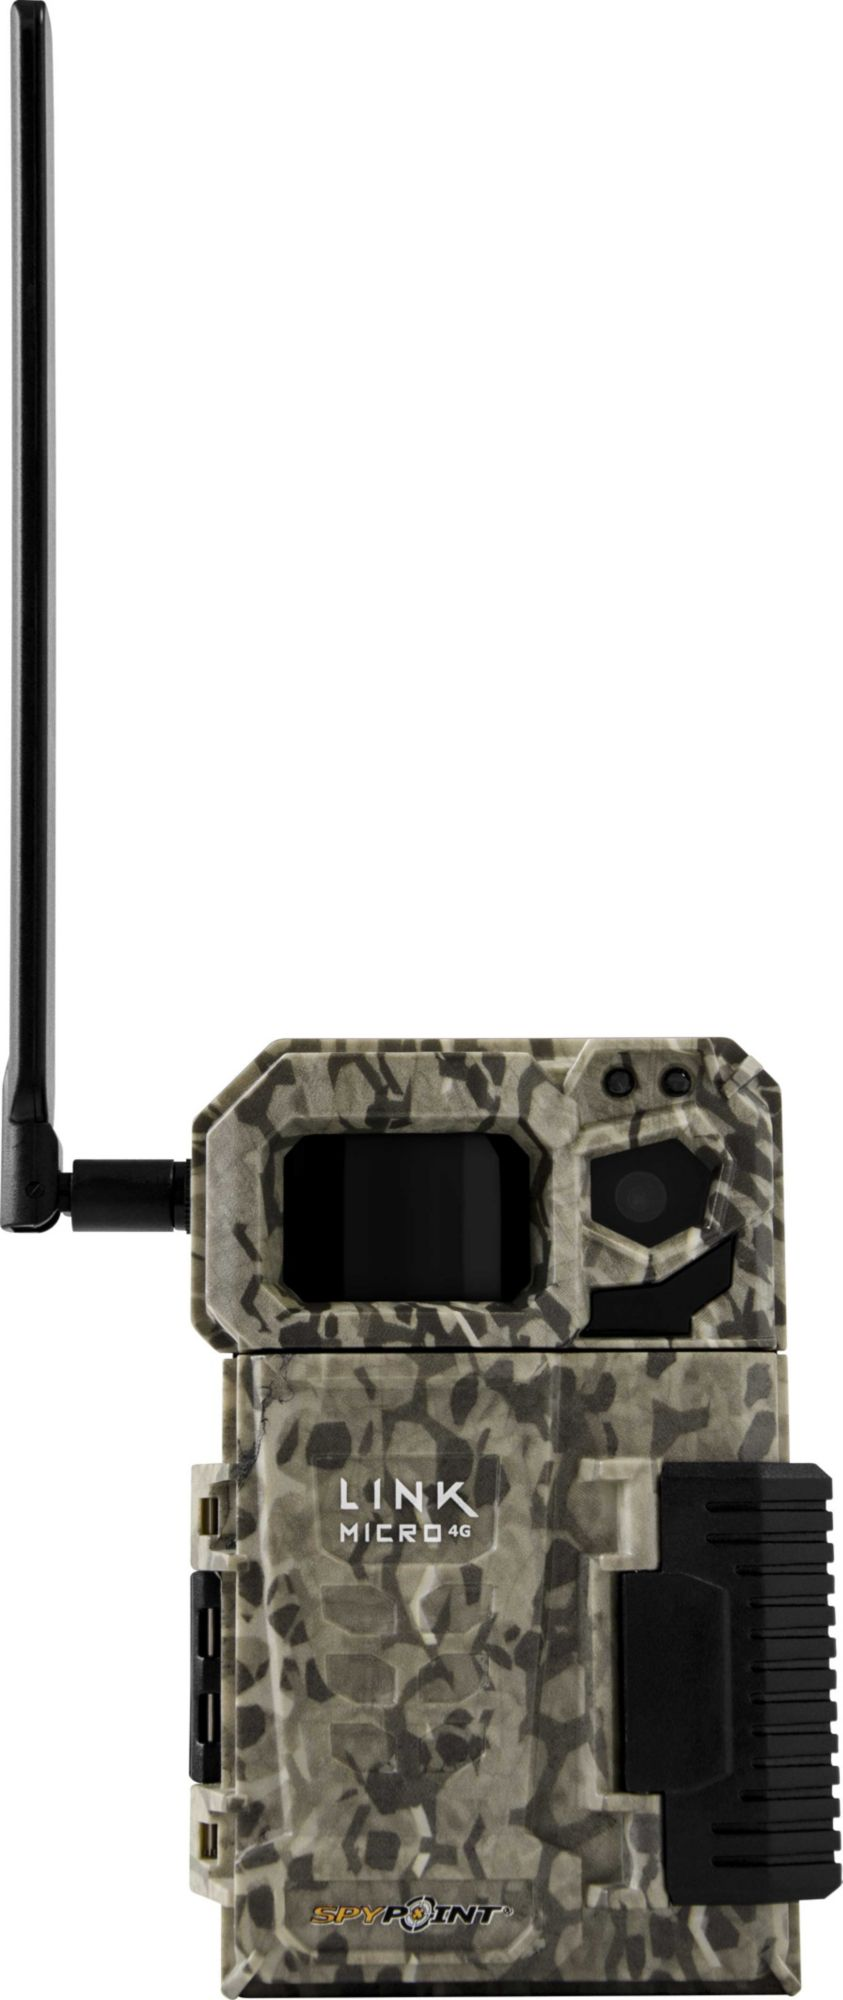 Spypoint LINK-MICRO Cellular Trail Camera – 10MP, night